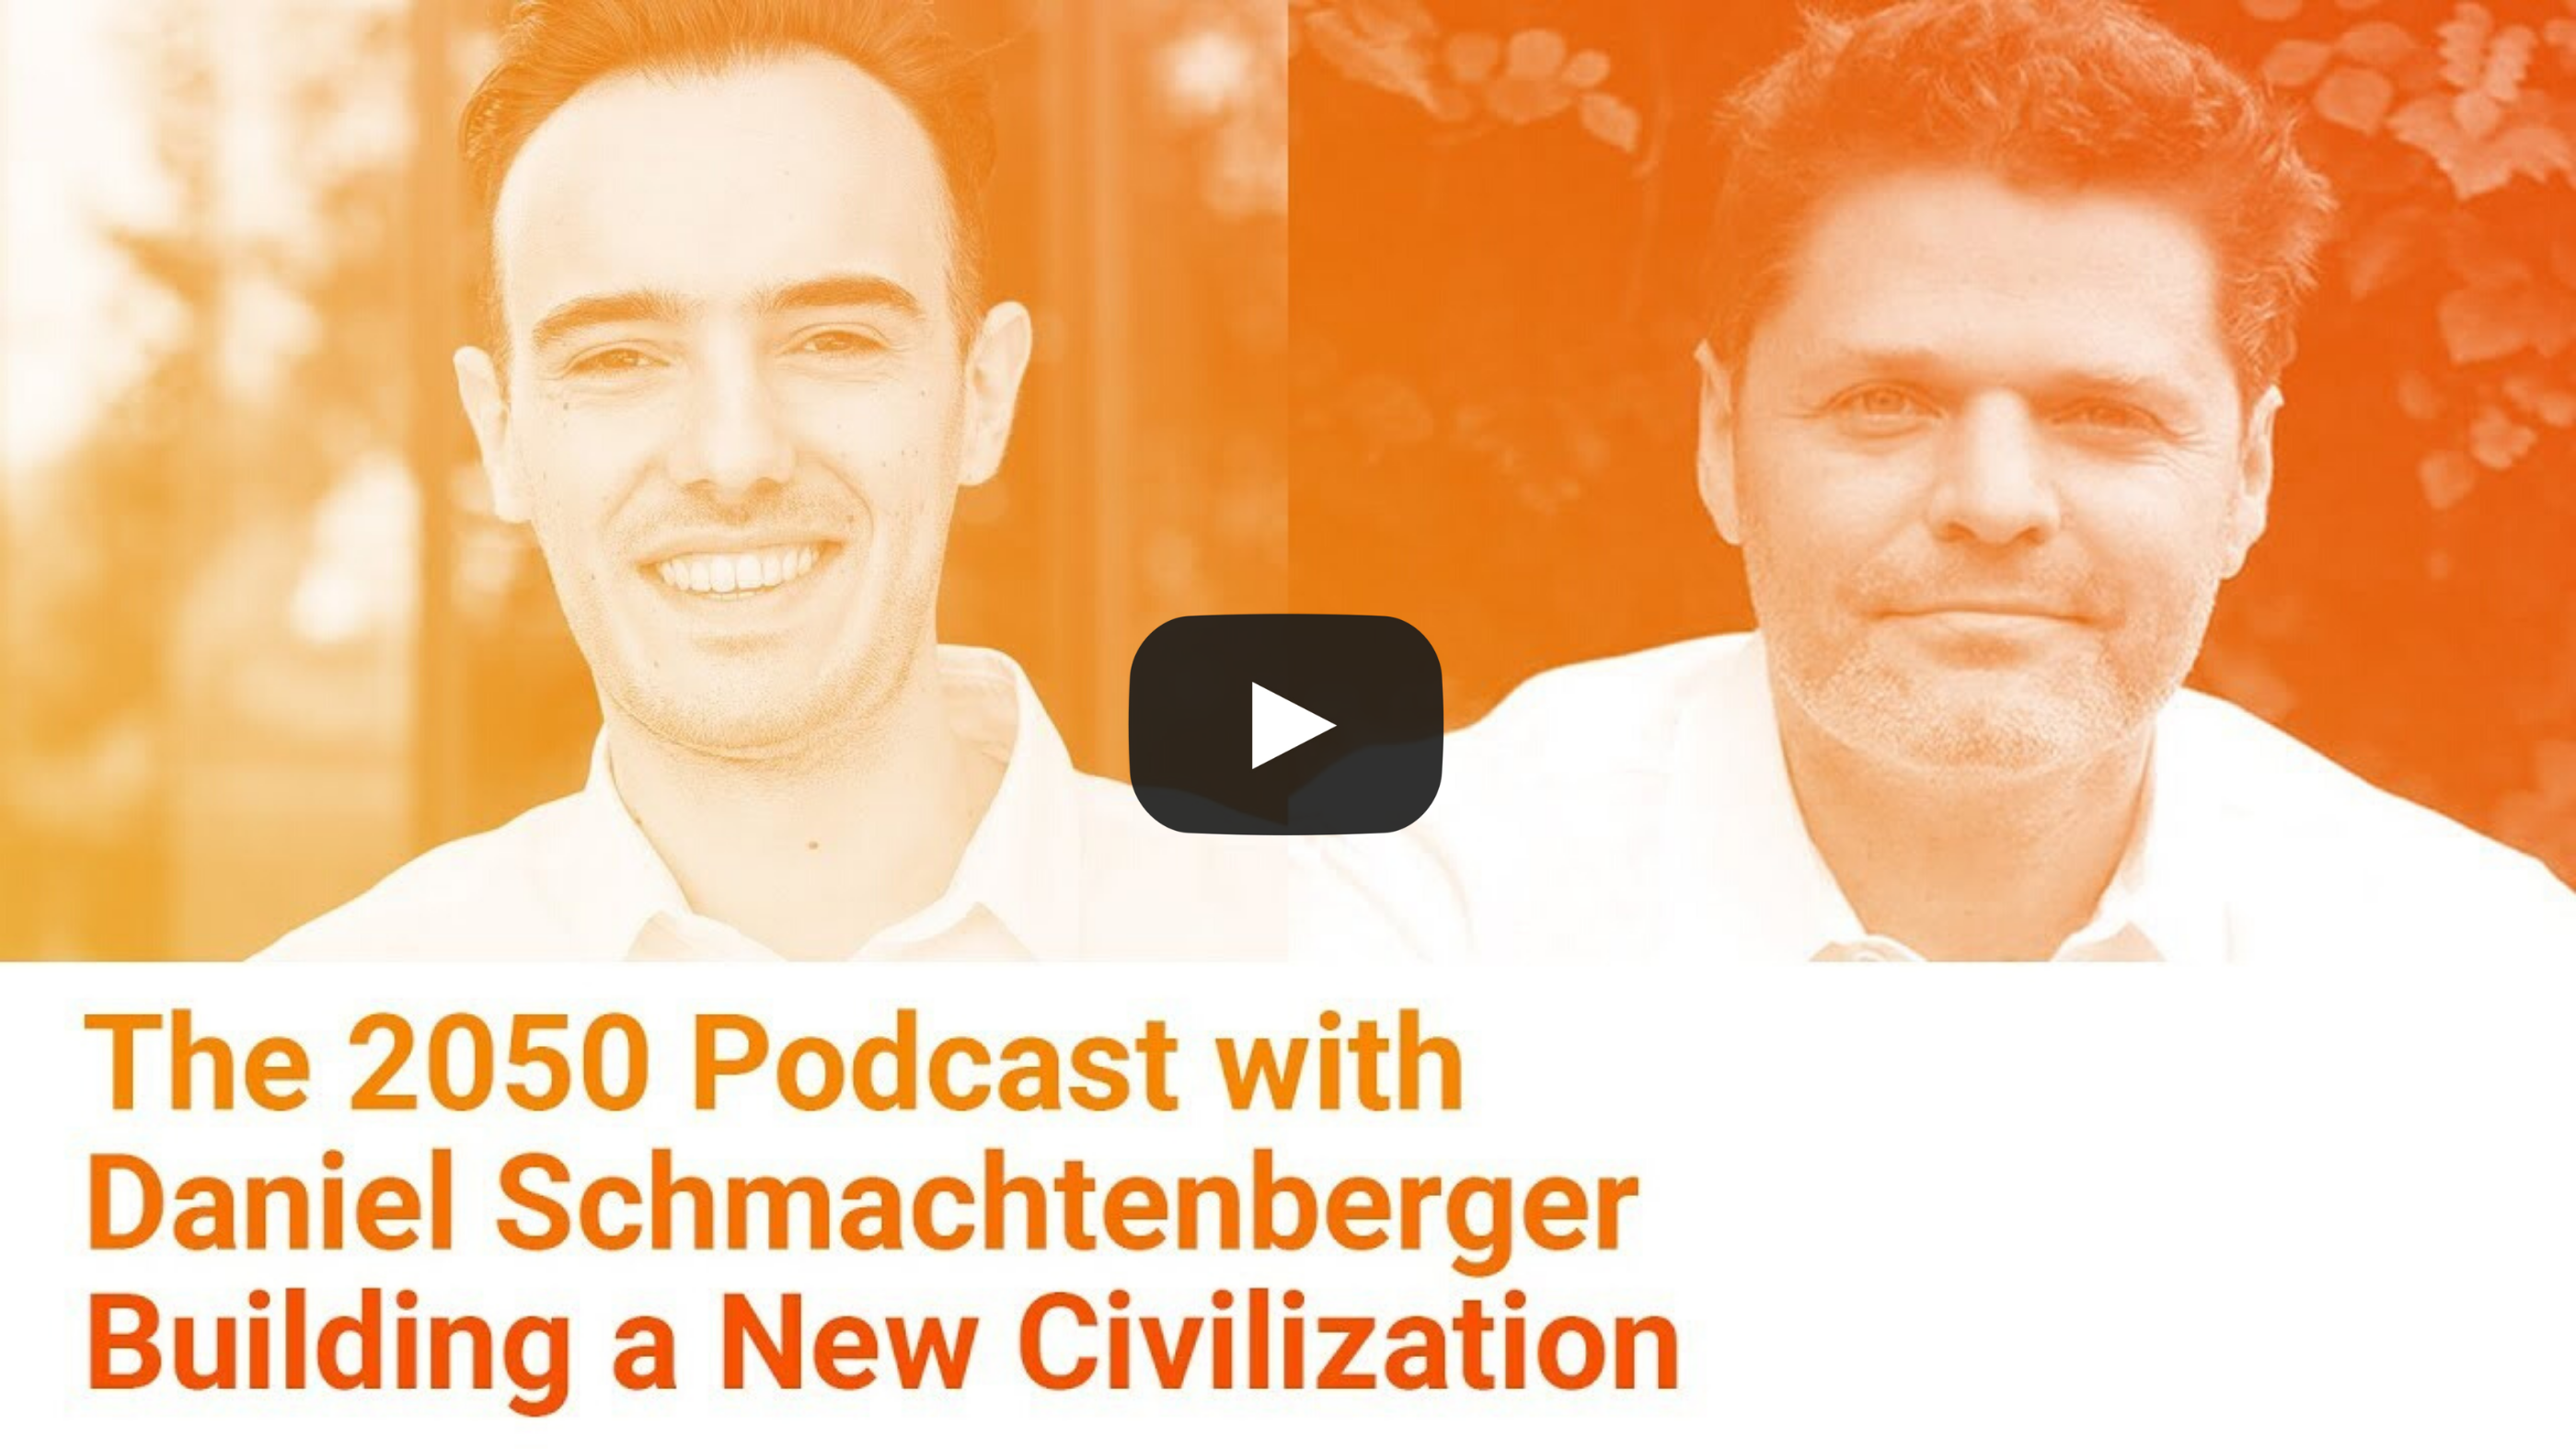 2050 Podcast – Building a New Civilization